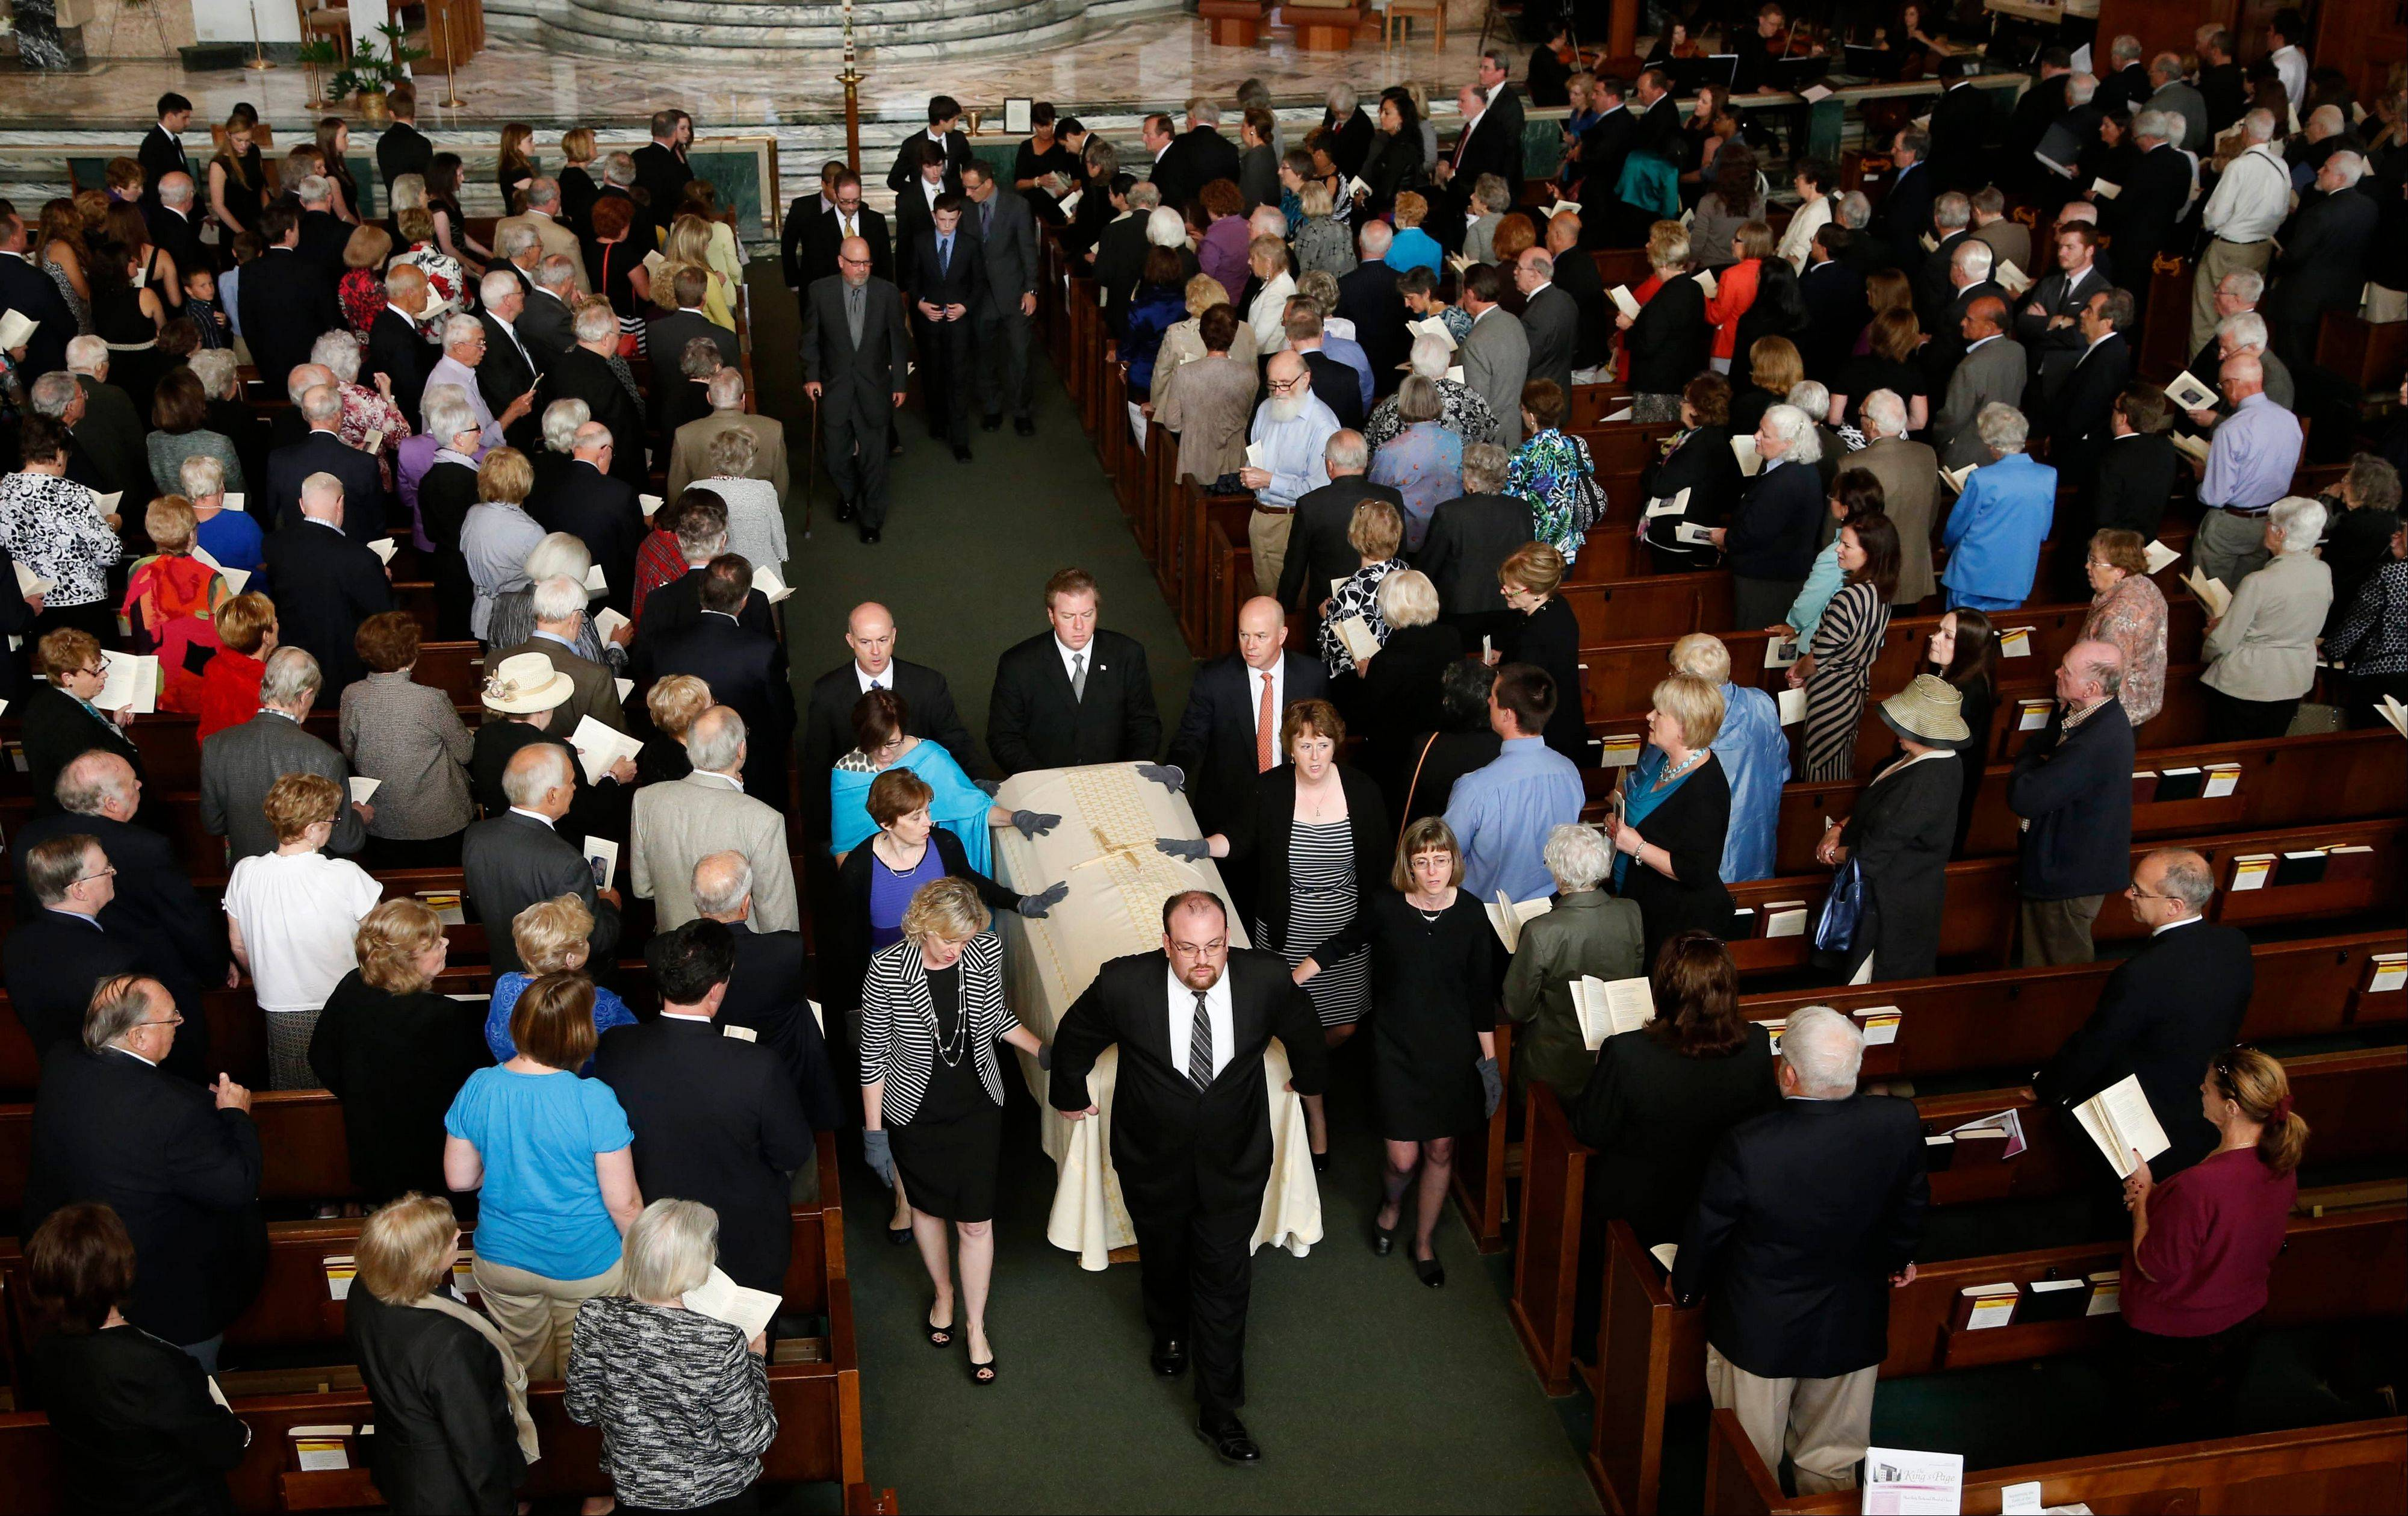 Family members of the Rev. Andrew Greeley lead the recessional after a funeral Mass for Greeley at Christ The King Church Wednesday, June 5, 2013, in Chicago. Greeley, an outspoken priest and best-selling author died in his Chicago home last week he was 85.